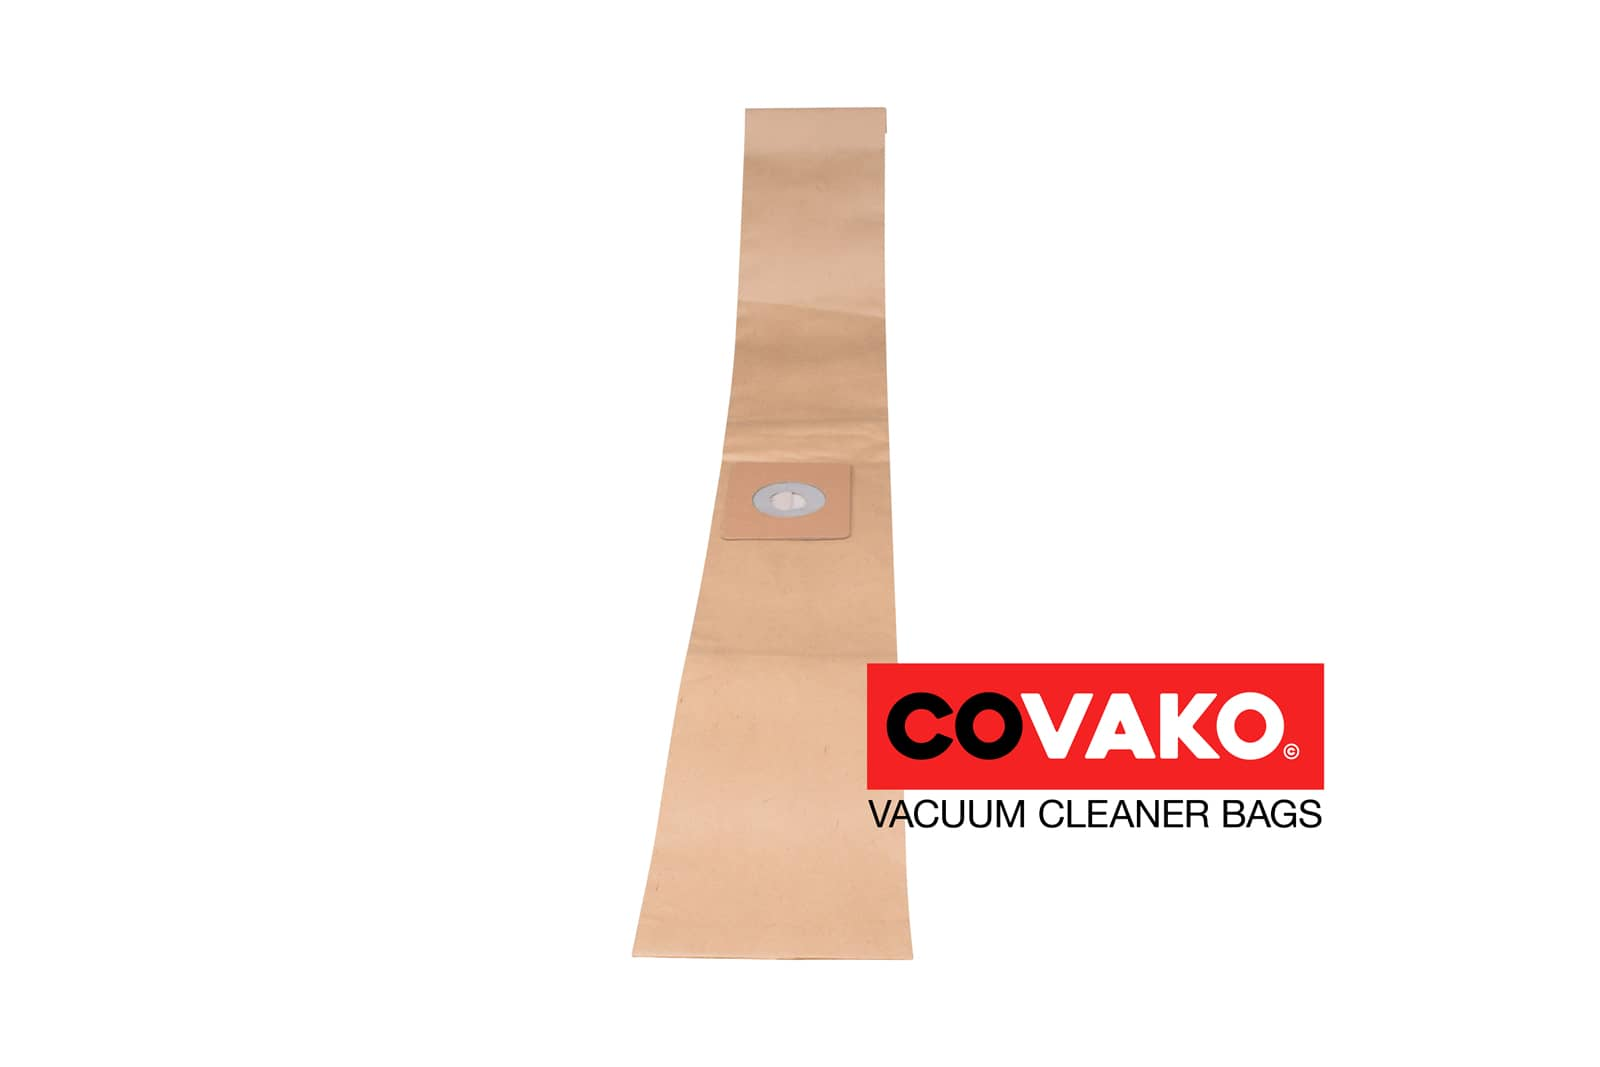 Oehme Otto Silent 10 / Paper - Oehme Otto vacuum cleaner bags